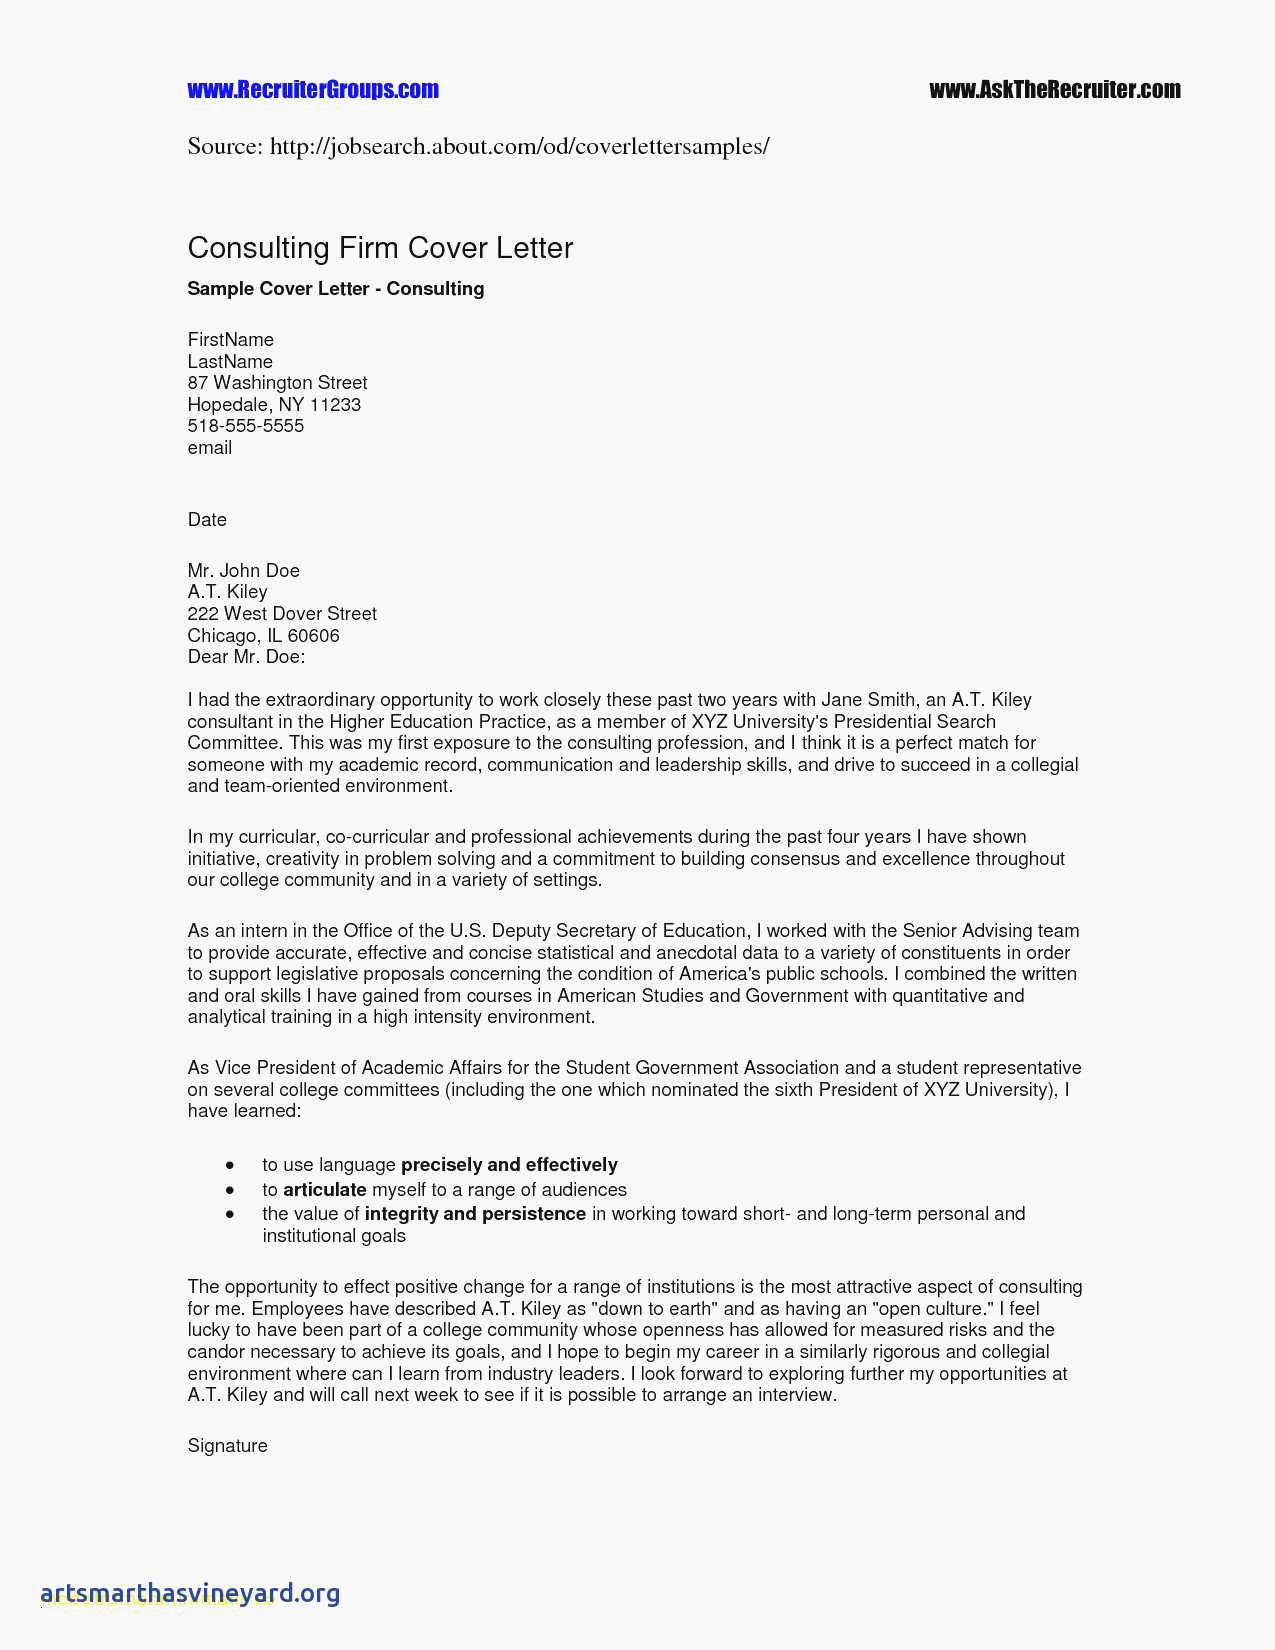 cover letter template open office example-Openoffice Vorlage Lebenslauf Neu Openoffice Datenbank Vorlagen Schön Lebenslauf Muster Download Open fice 11-t